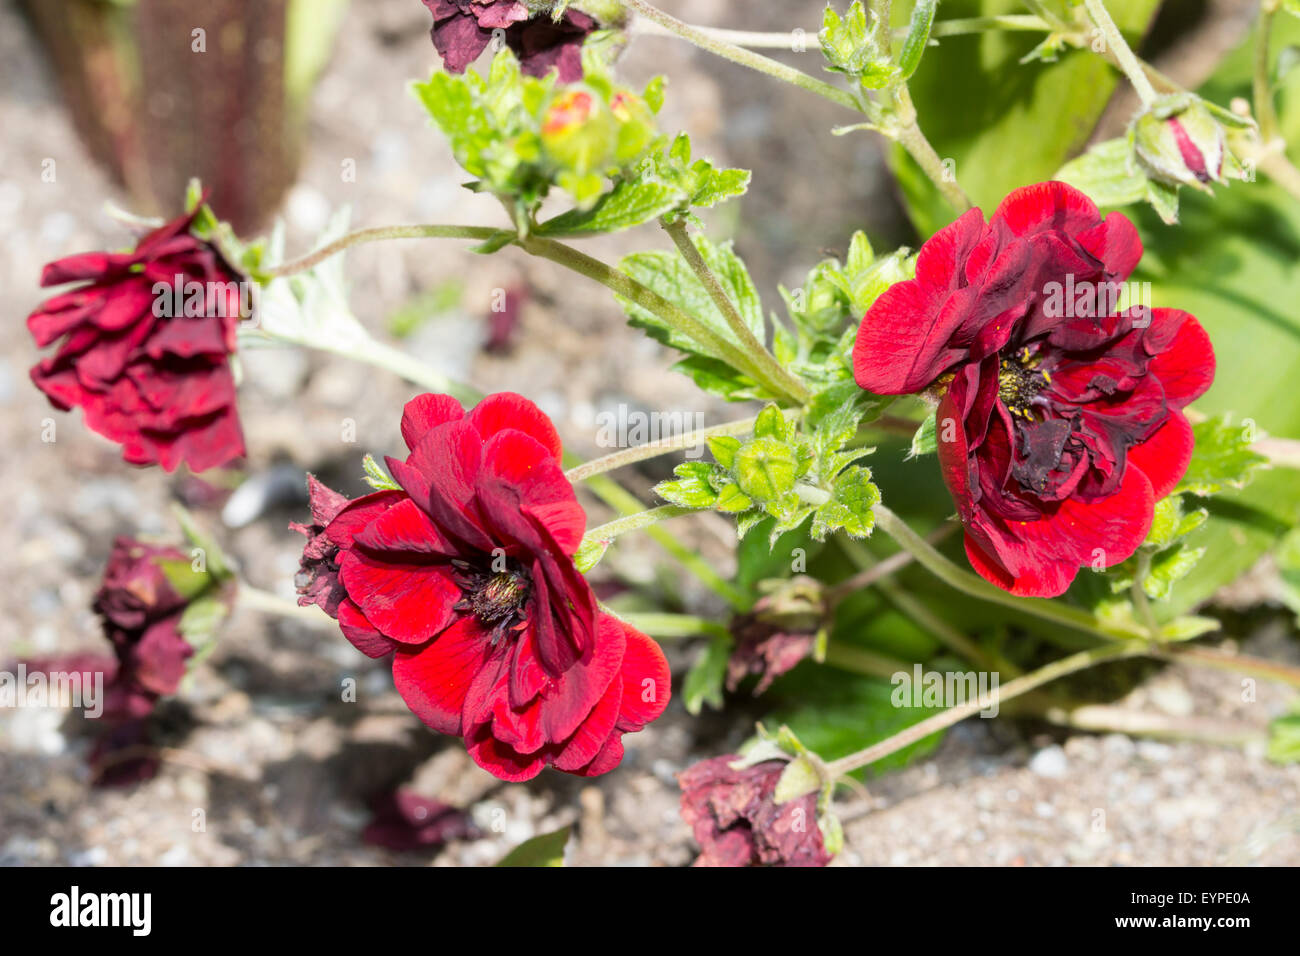 Double flowers of the low growing perennial, Potentilla x cultorum 'Volcan' - Stock Image